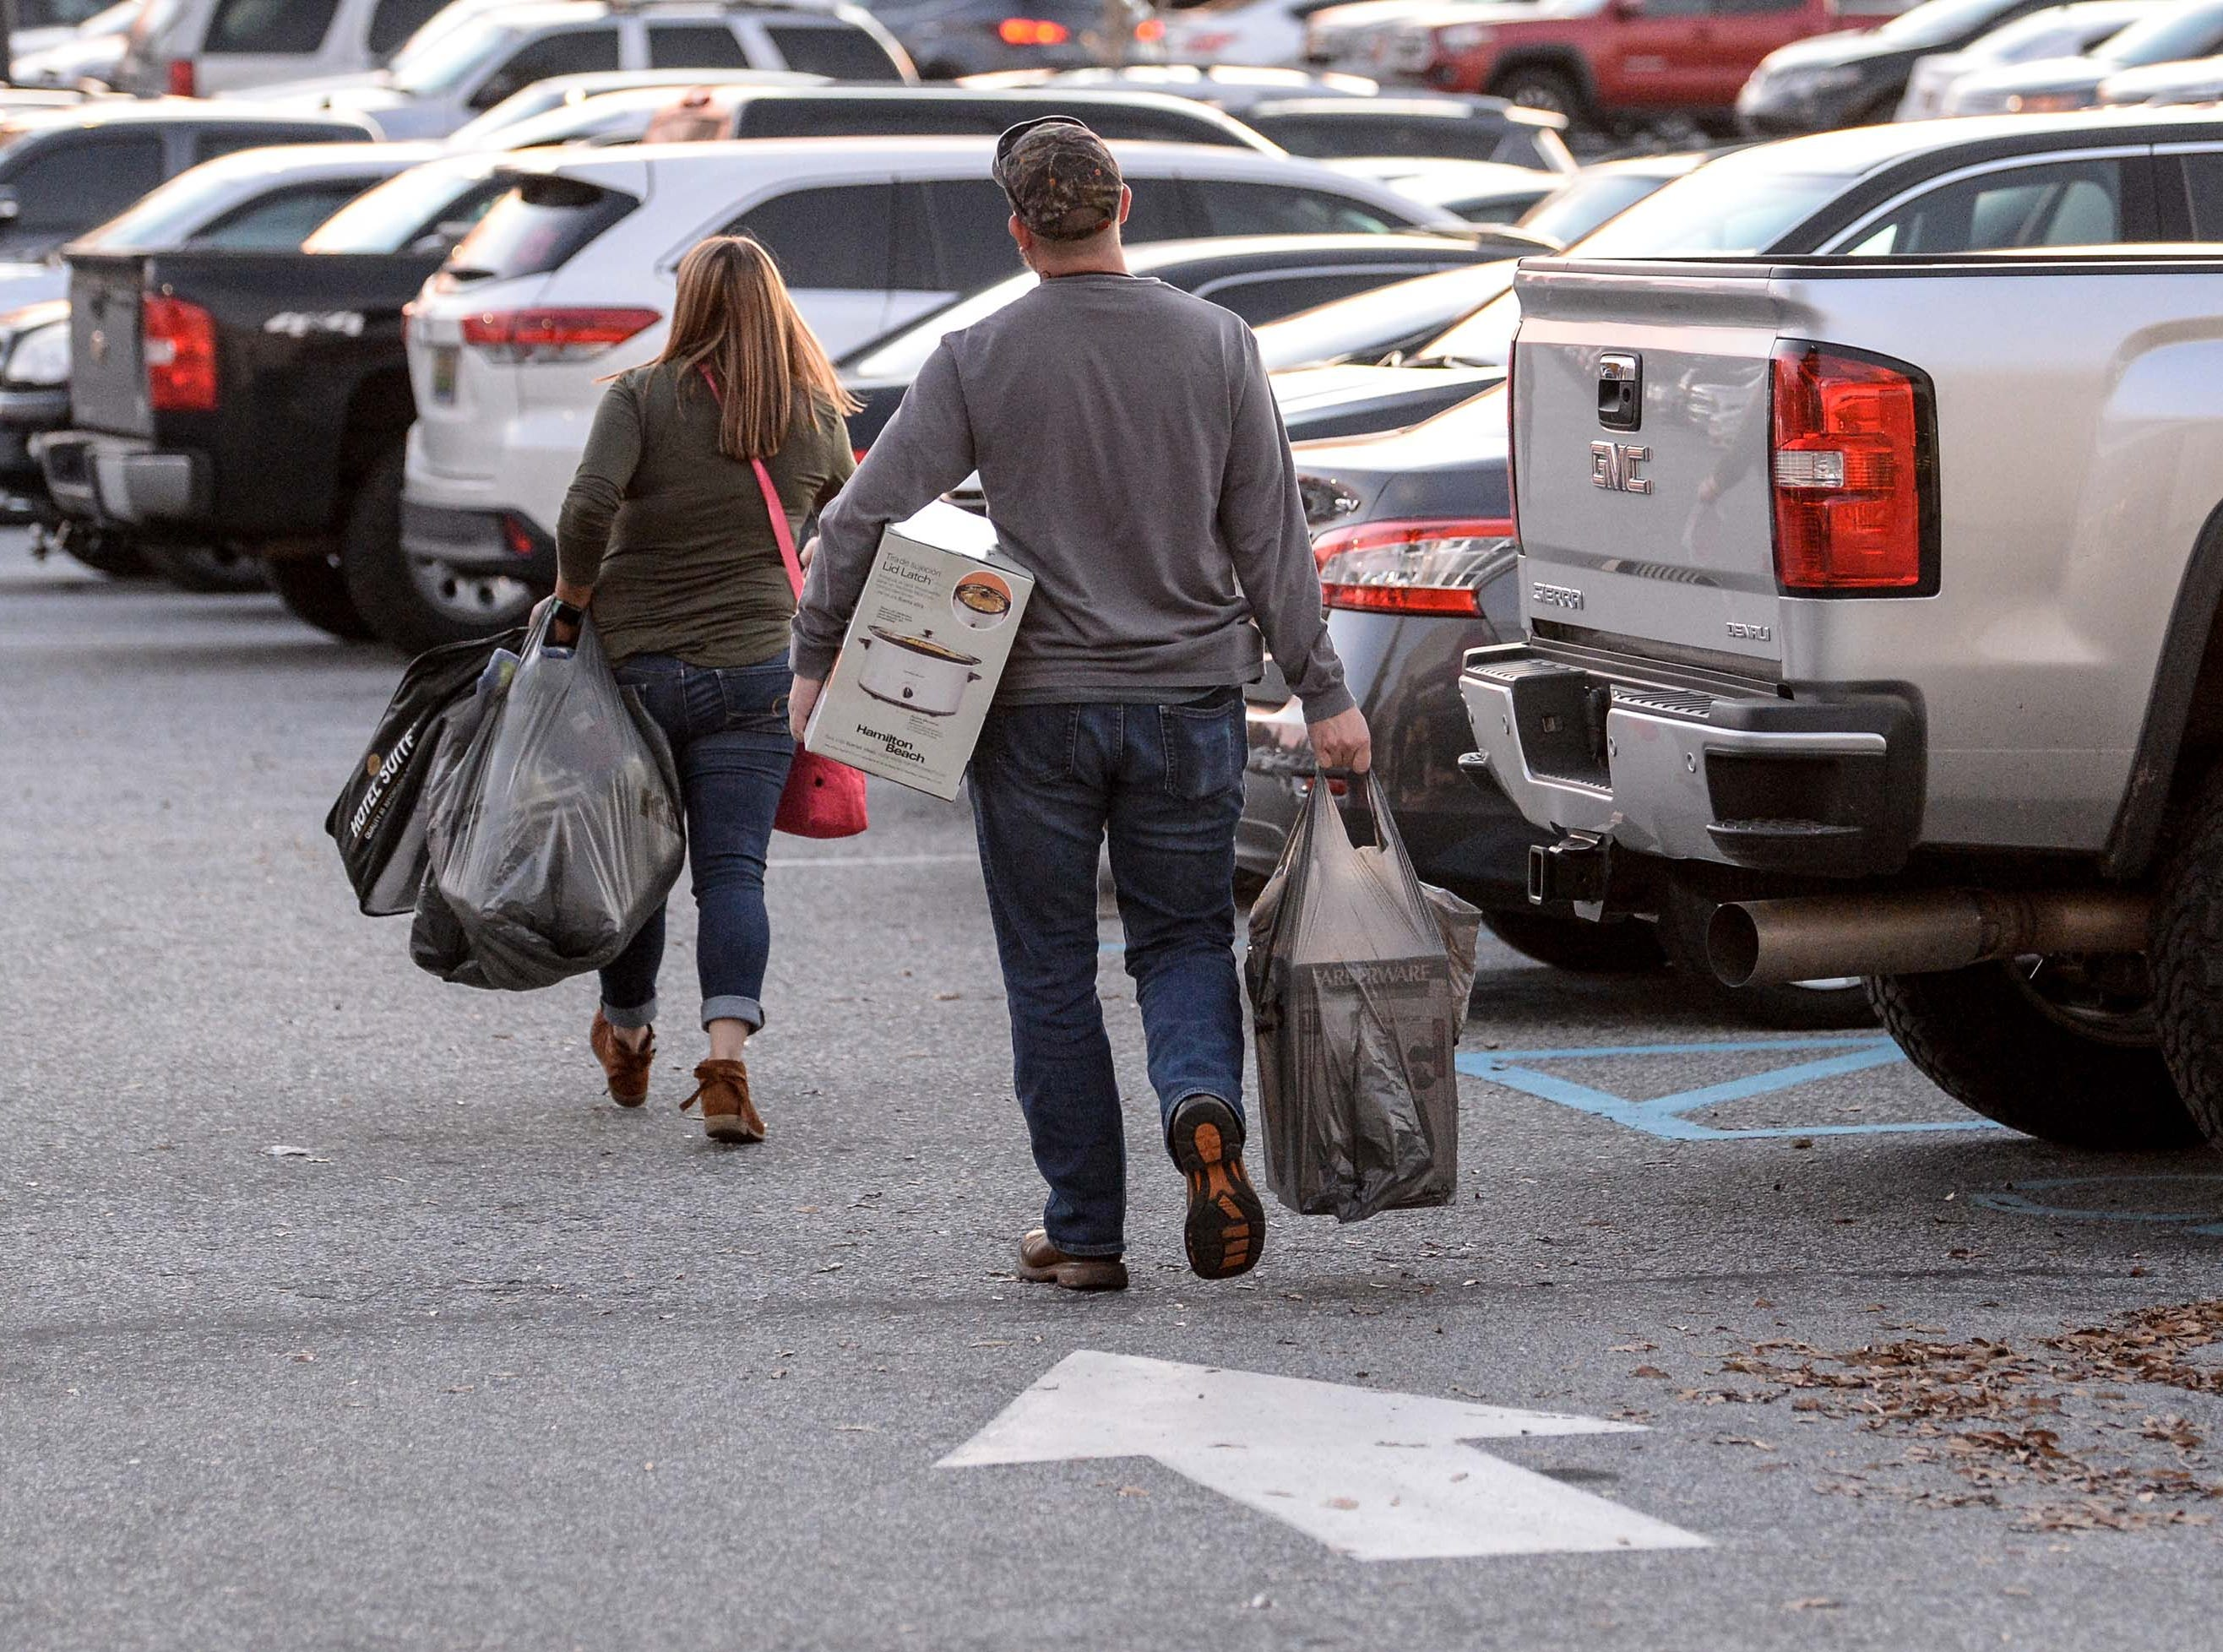 Tiffany Pake, left, of Anderson and Kevin Crisco leave Kohl's in Anderson with sale items on Thanksgiving Day, Thursday, November 22, 2018.